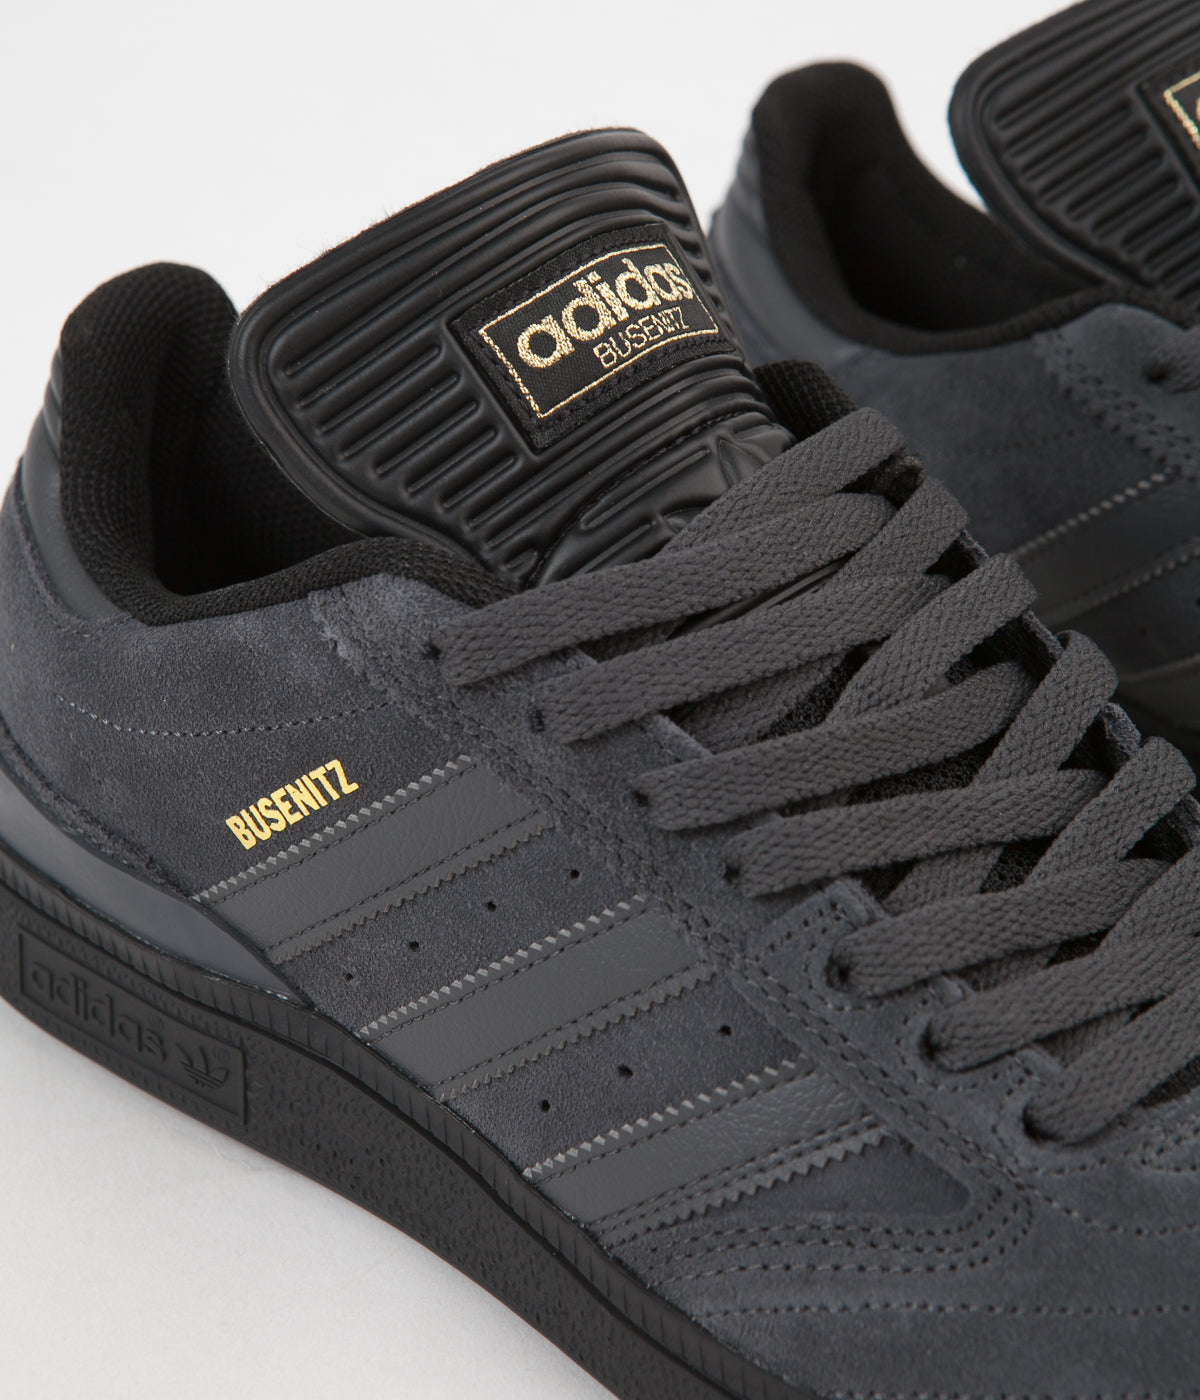 94a02acb3c4e6 ... Adidas Busenitz Pro Shoes - Core Black / Solid Grey / Gold Foil ...